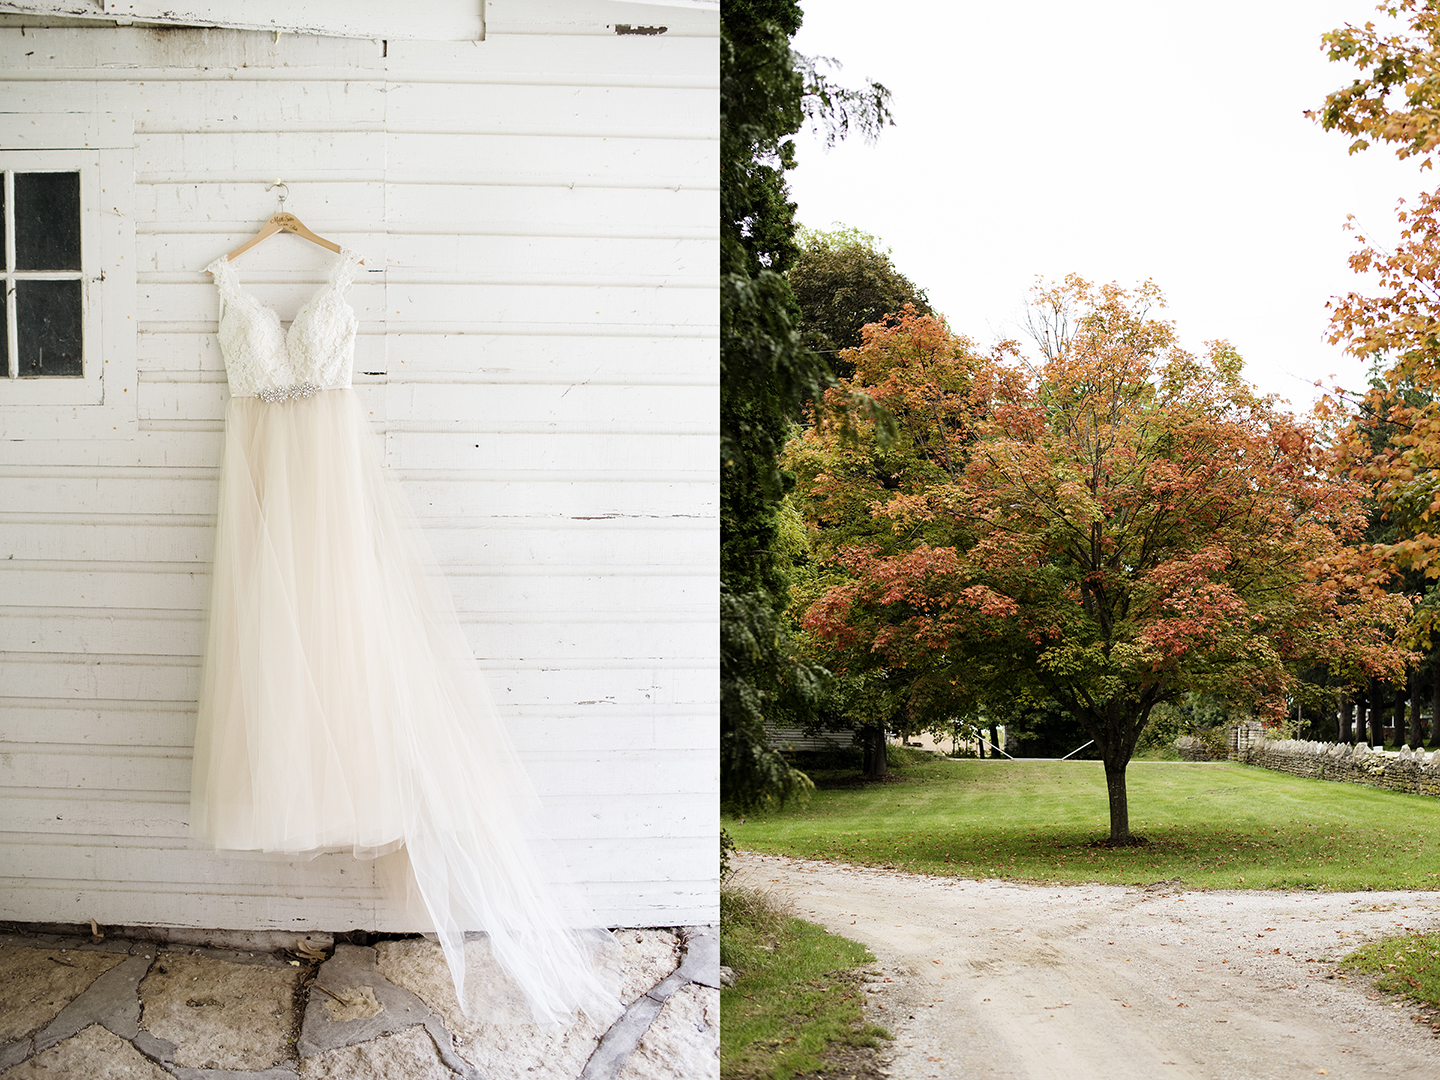 Rustic Barn Wedding Photos Mayowood Stone Barn Rochester, MN | Photography by Photogen Inc. | Eliesa Johnson | Based in Minneapolis, Minnesota